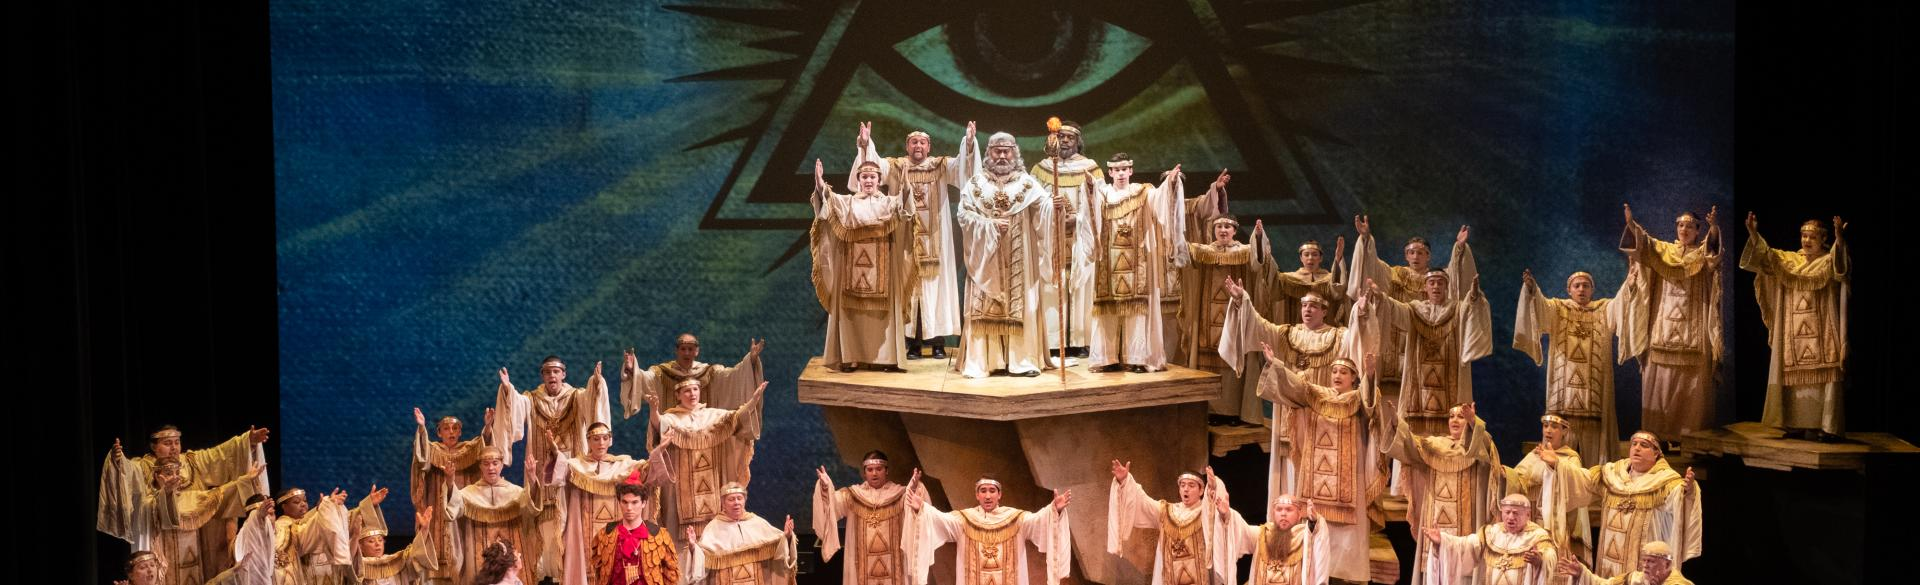 The Magic Flute performance photo by Grand Lubell courtesy of Toledo Opera